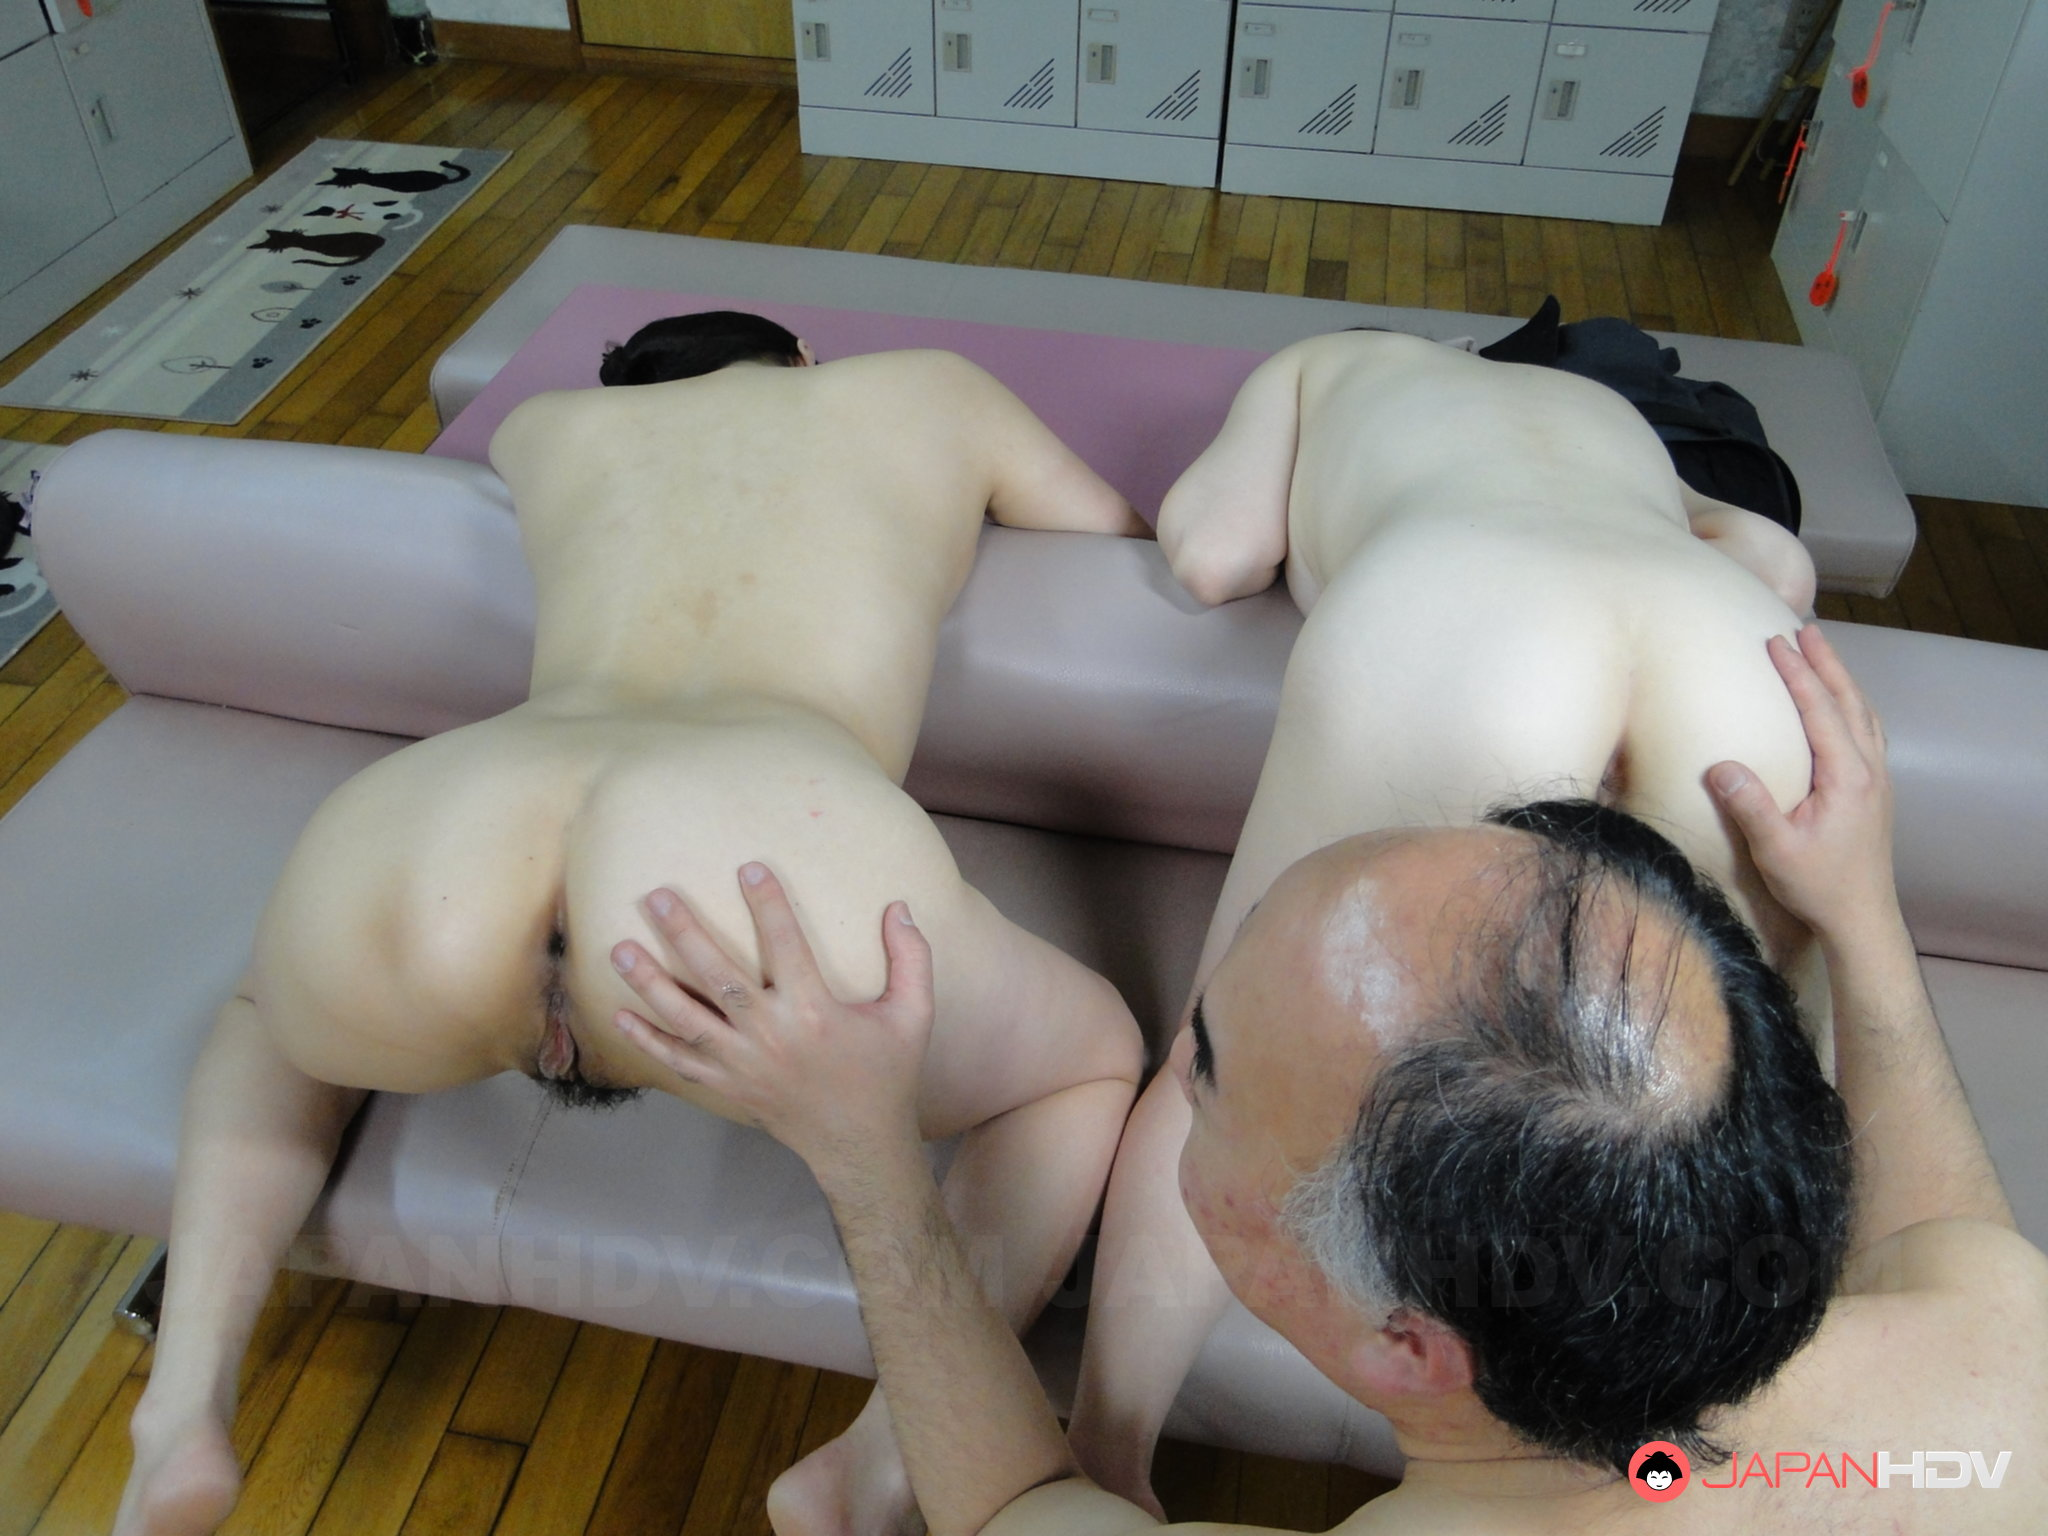 Jun Sena and Asakura Kotomi get pounded hard adult gallery Japan HDV